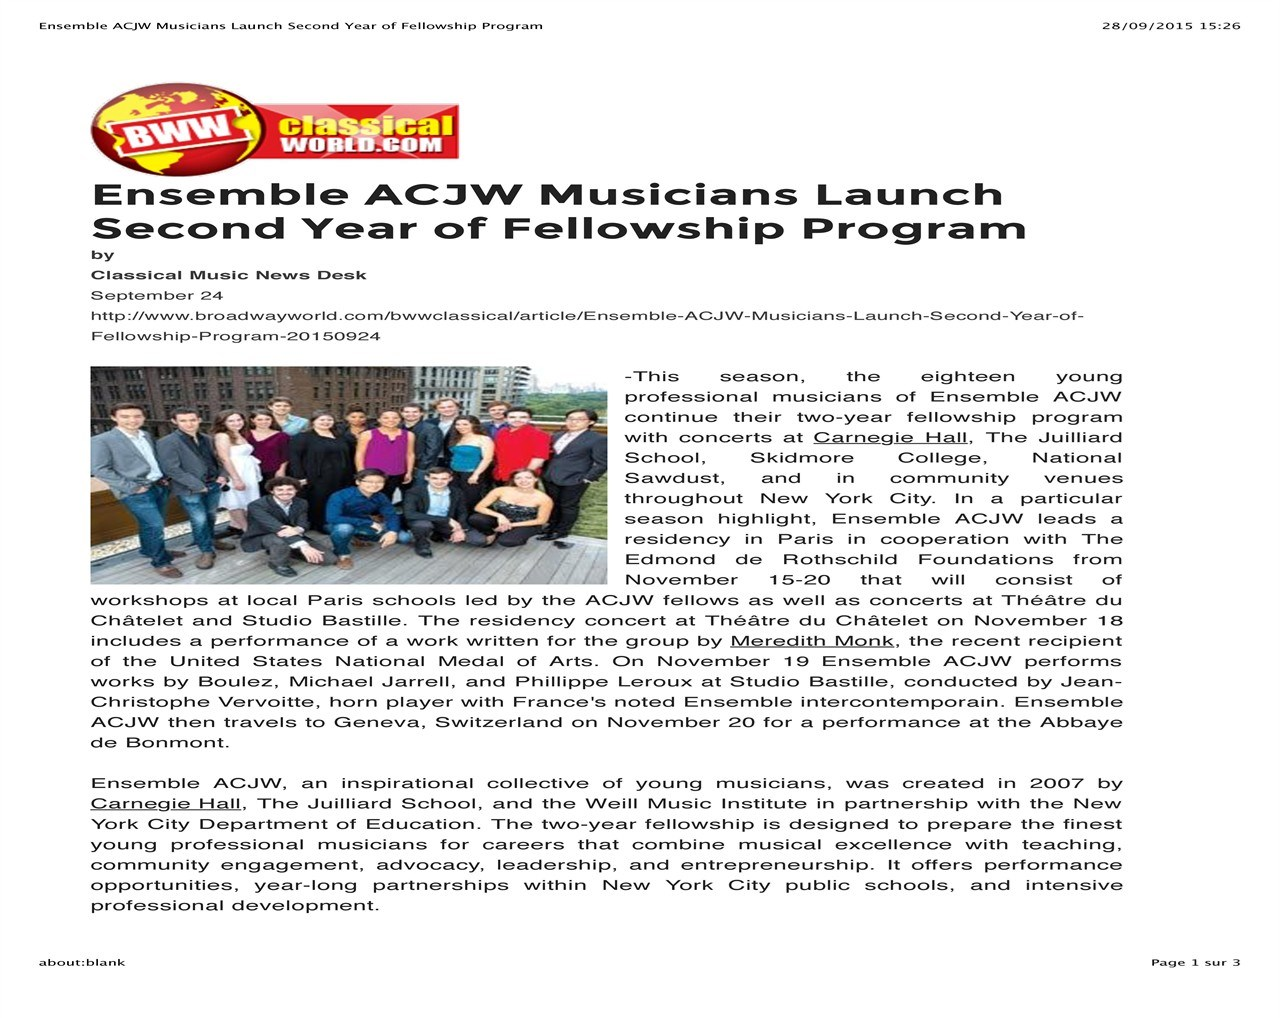 Ensemble ACJW musiciens launch second year of fellowship